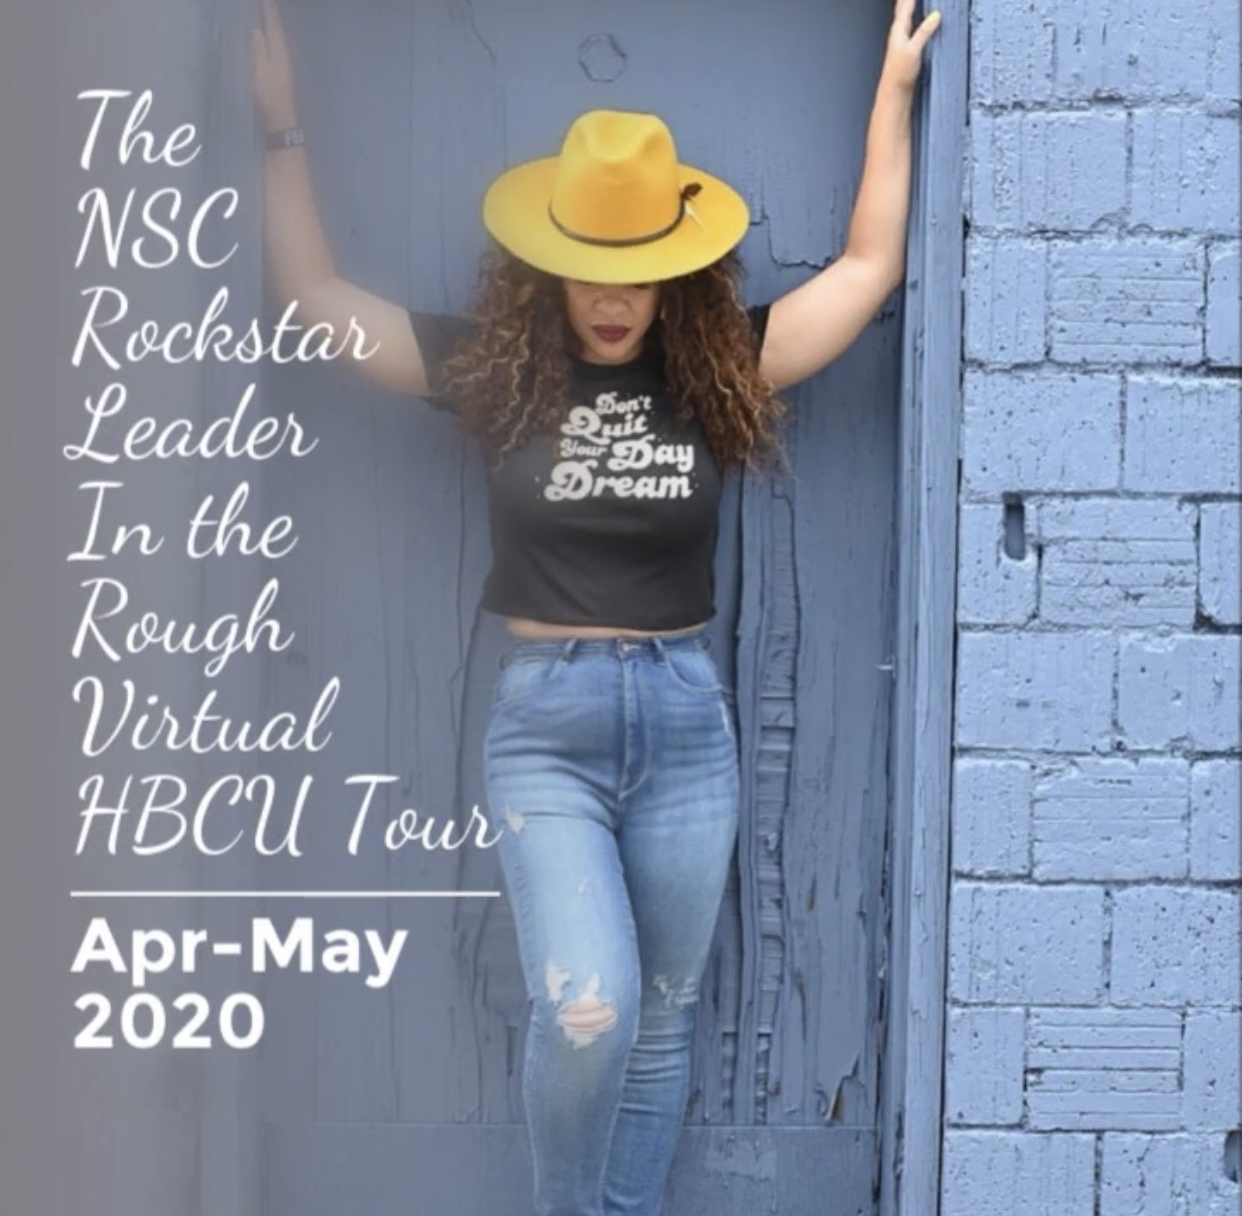 The NSC Rockstar Leader In the Rough Virtual HBCU Tour